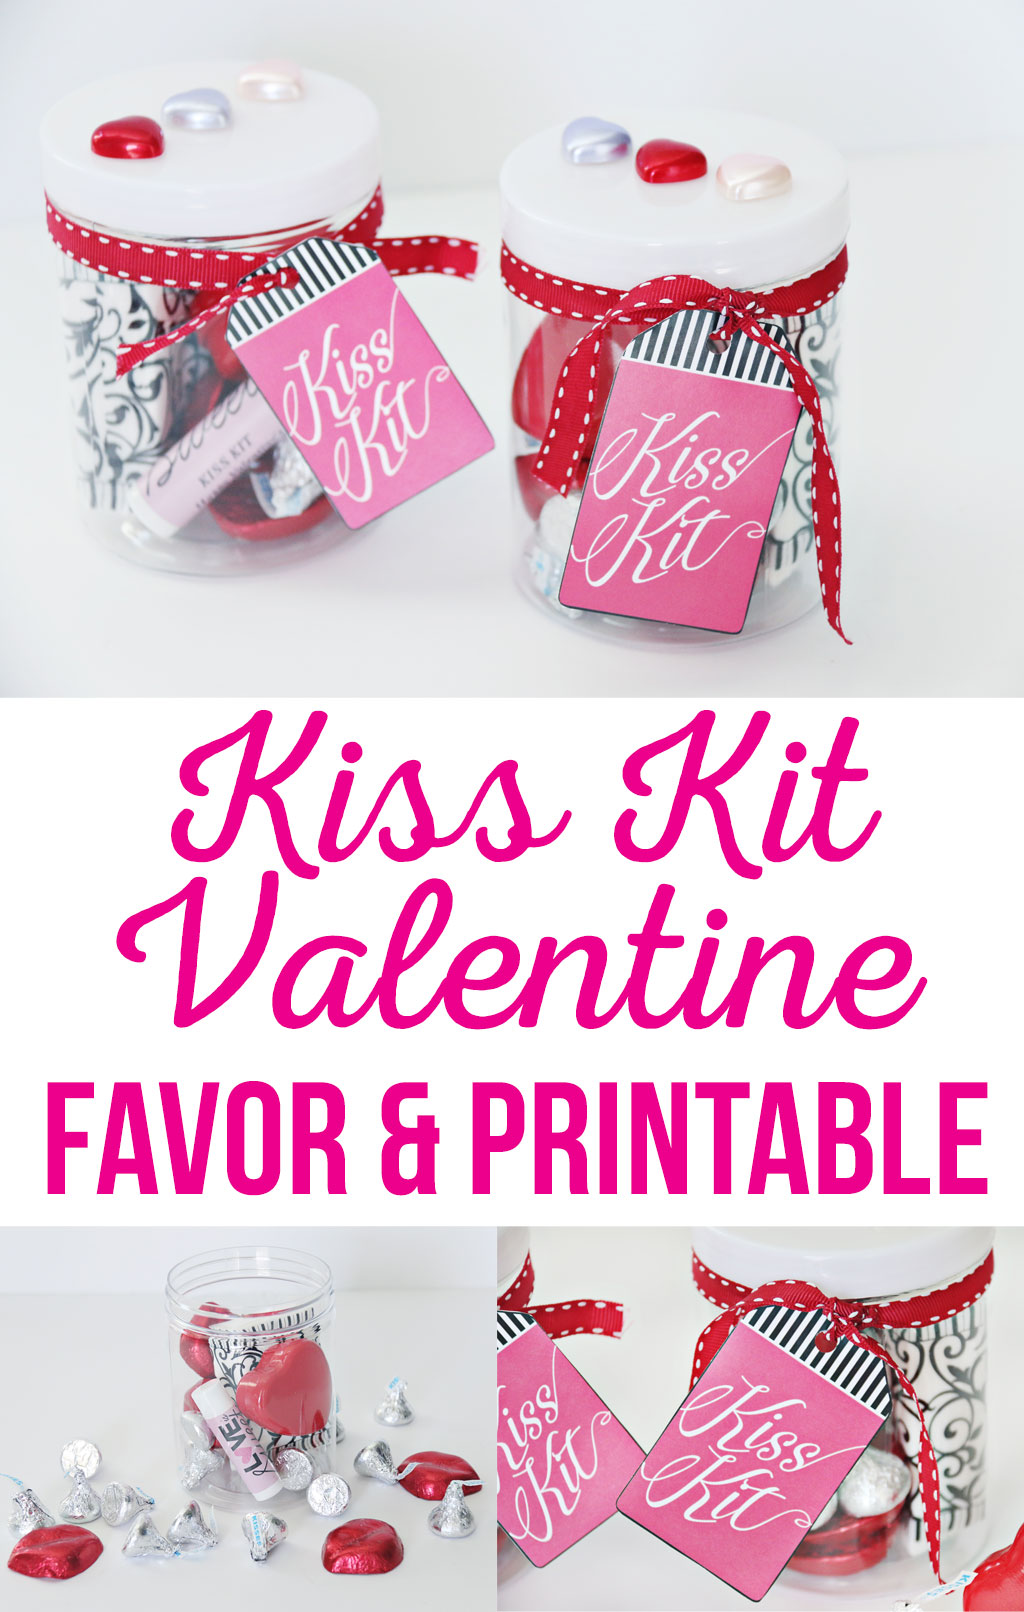 Kiss Kit Valentine Favor and Printable